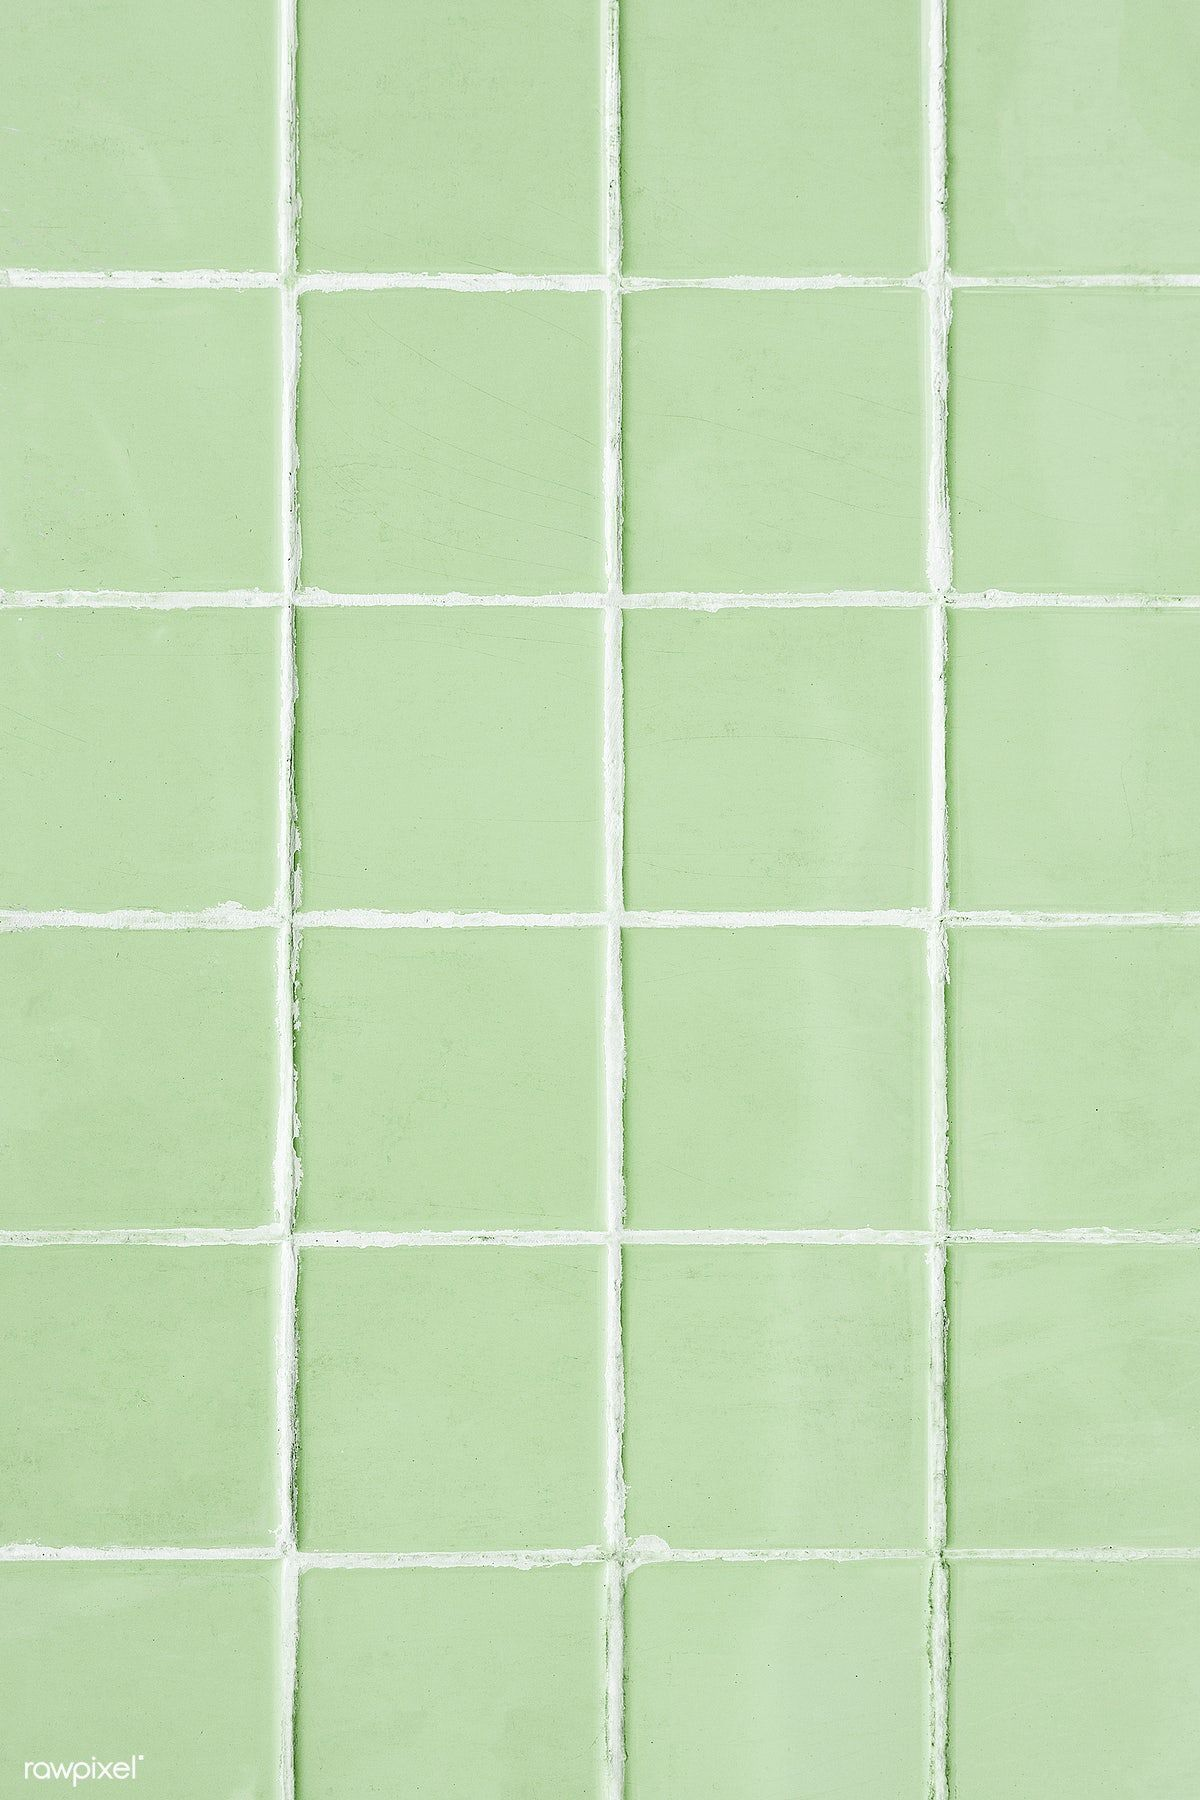 We have got 27 picture about sage green aesthetic collage wallpaper laptop images, photos, pictures, backgrounds, and more. Sage green tile patterned background | free image by ...